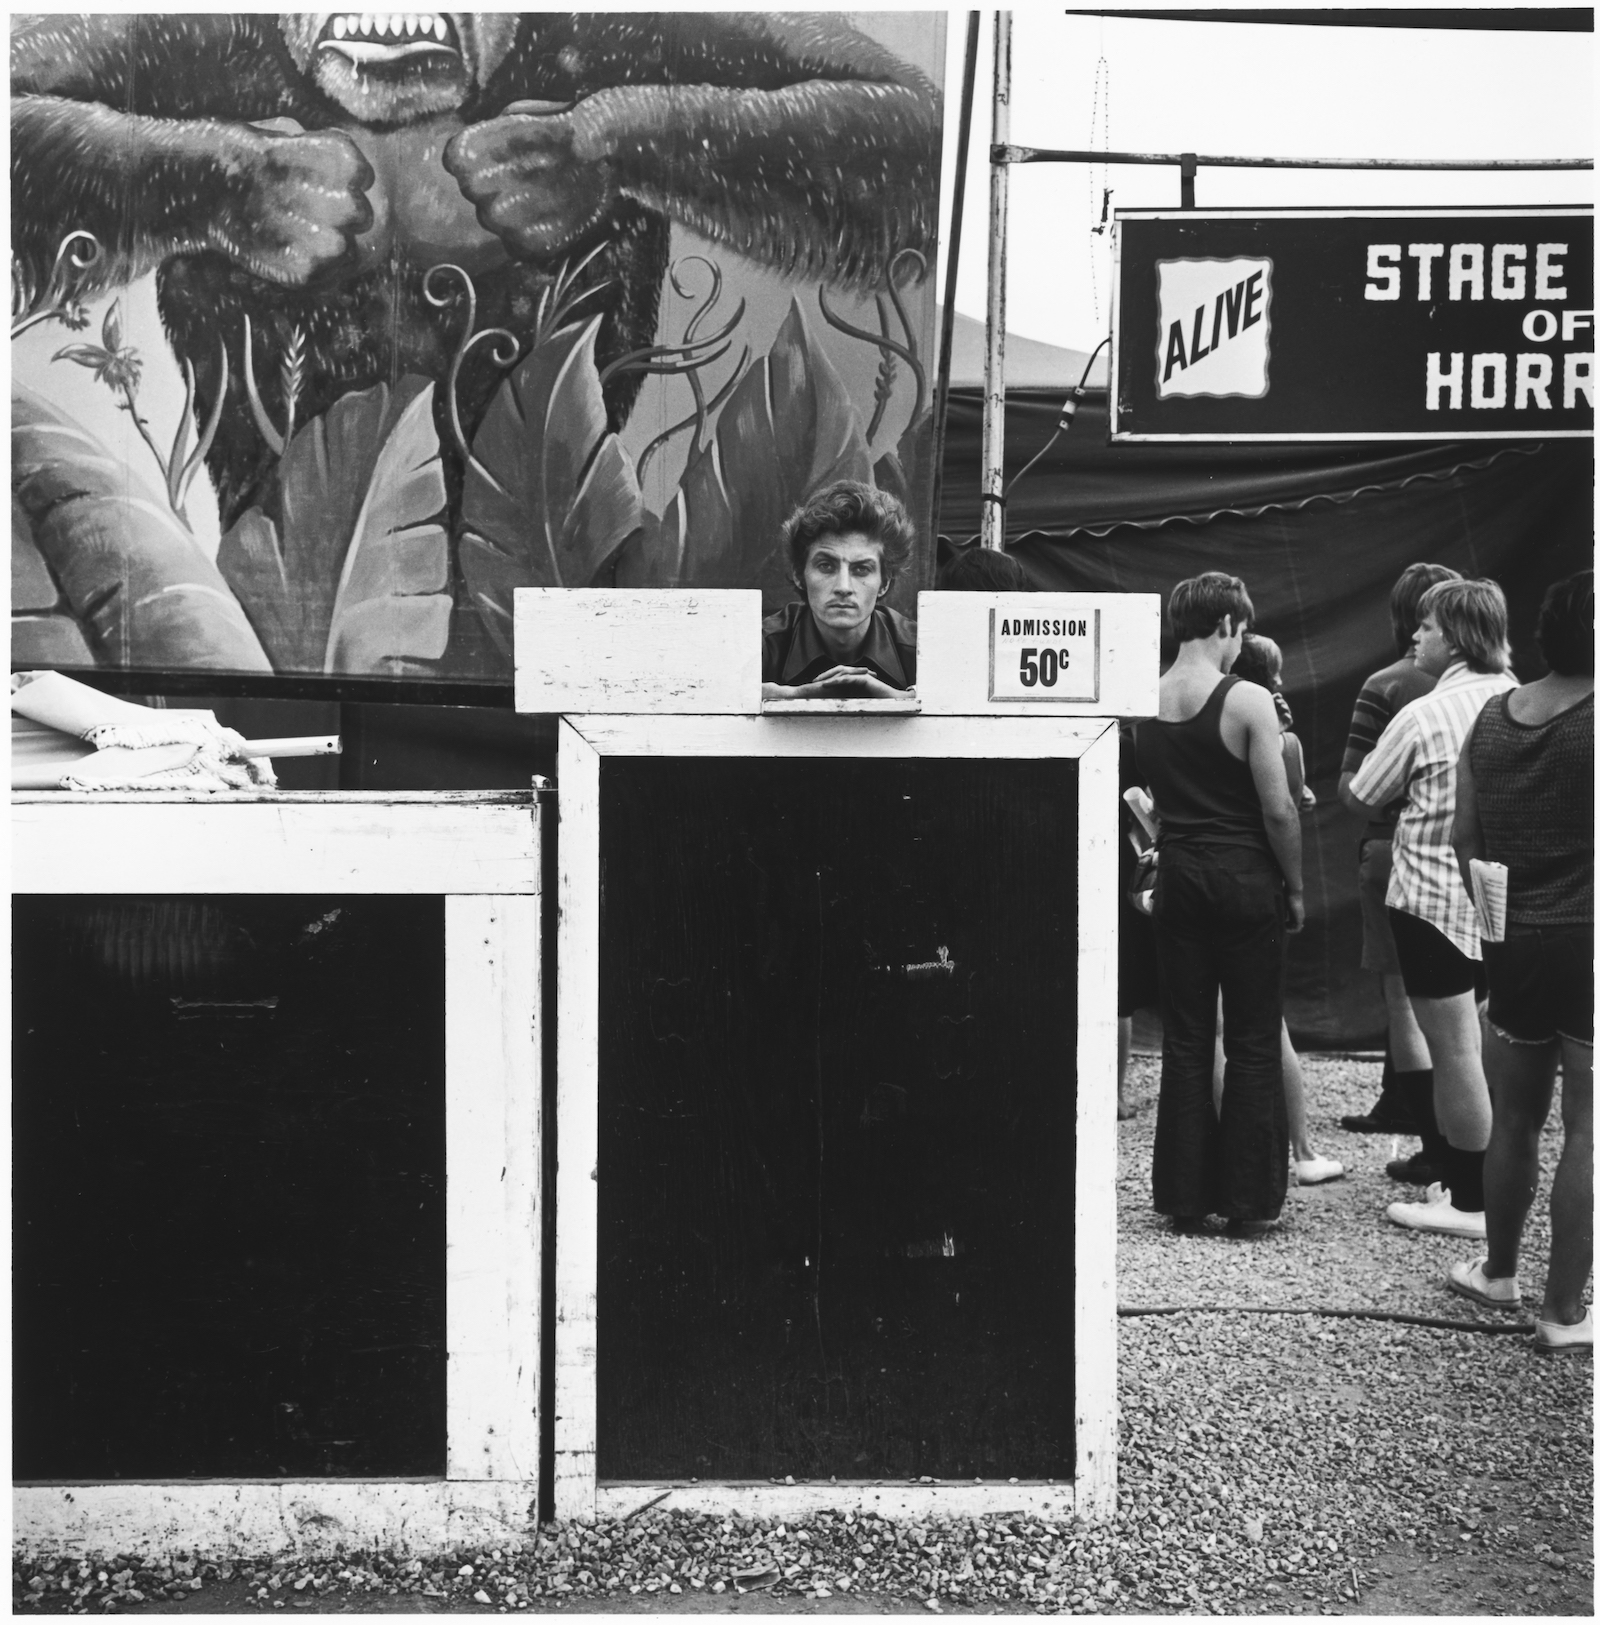 Ticket taker, Minnesota State Fair, St. Paul, Minnesota, 1973